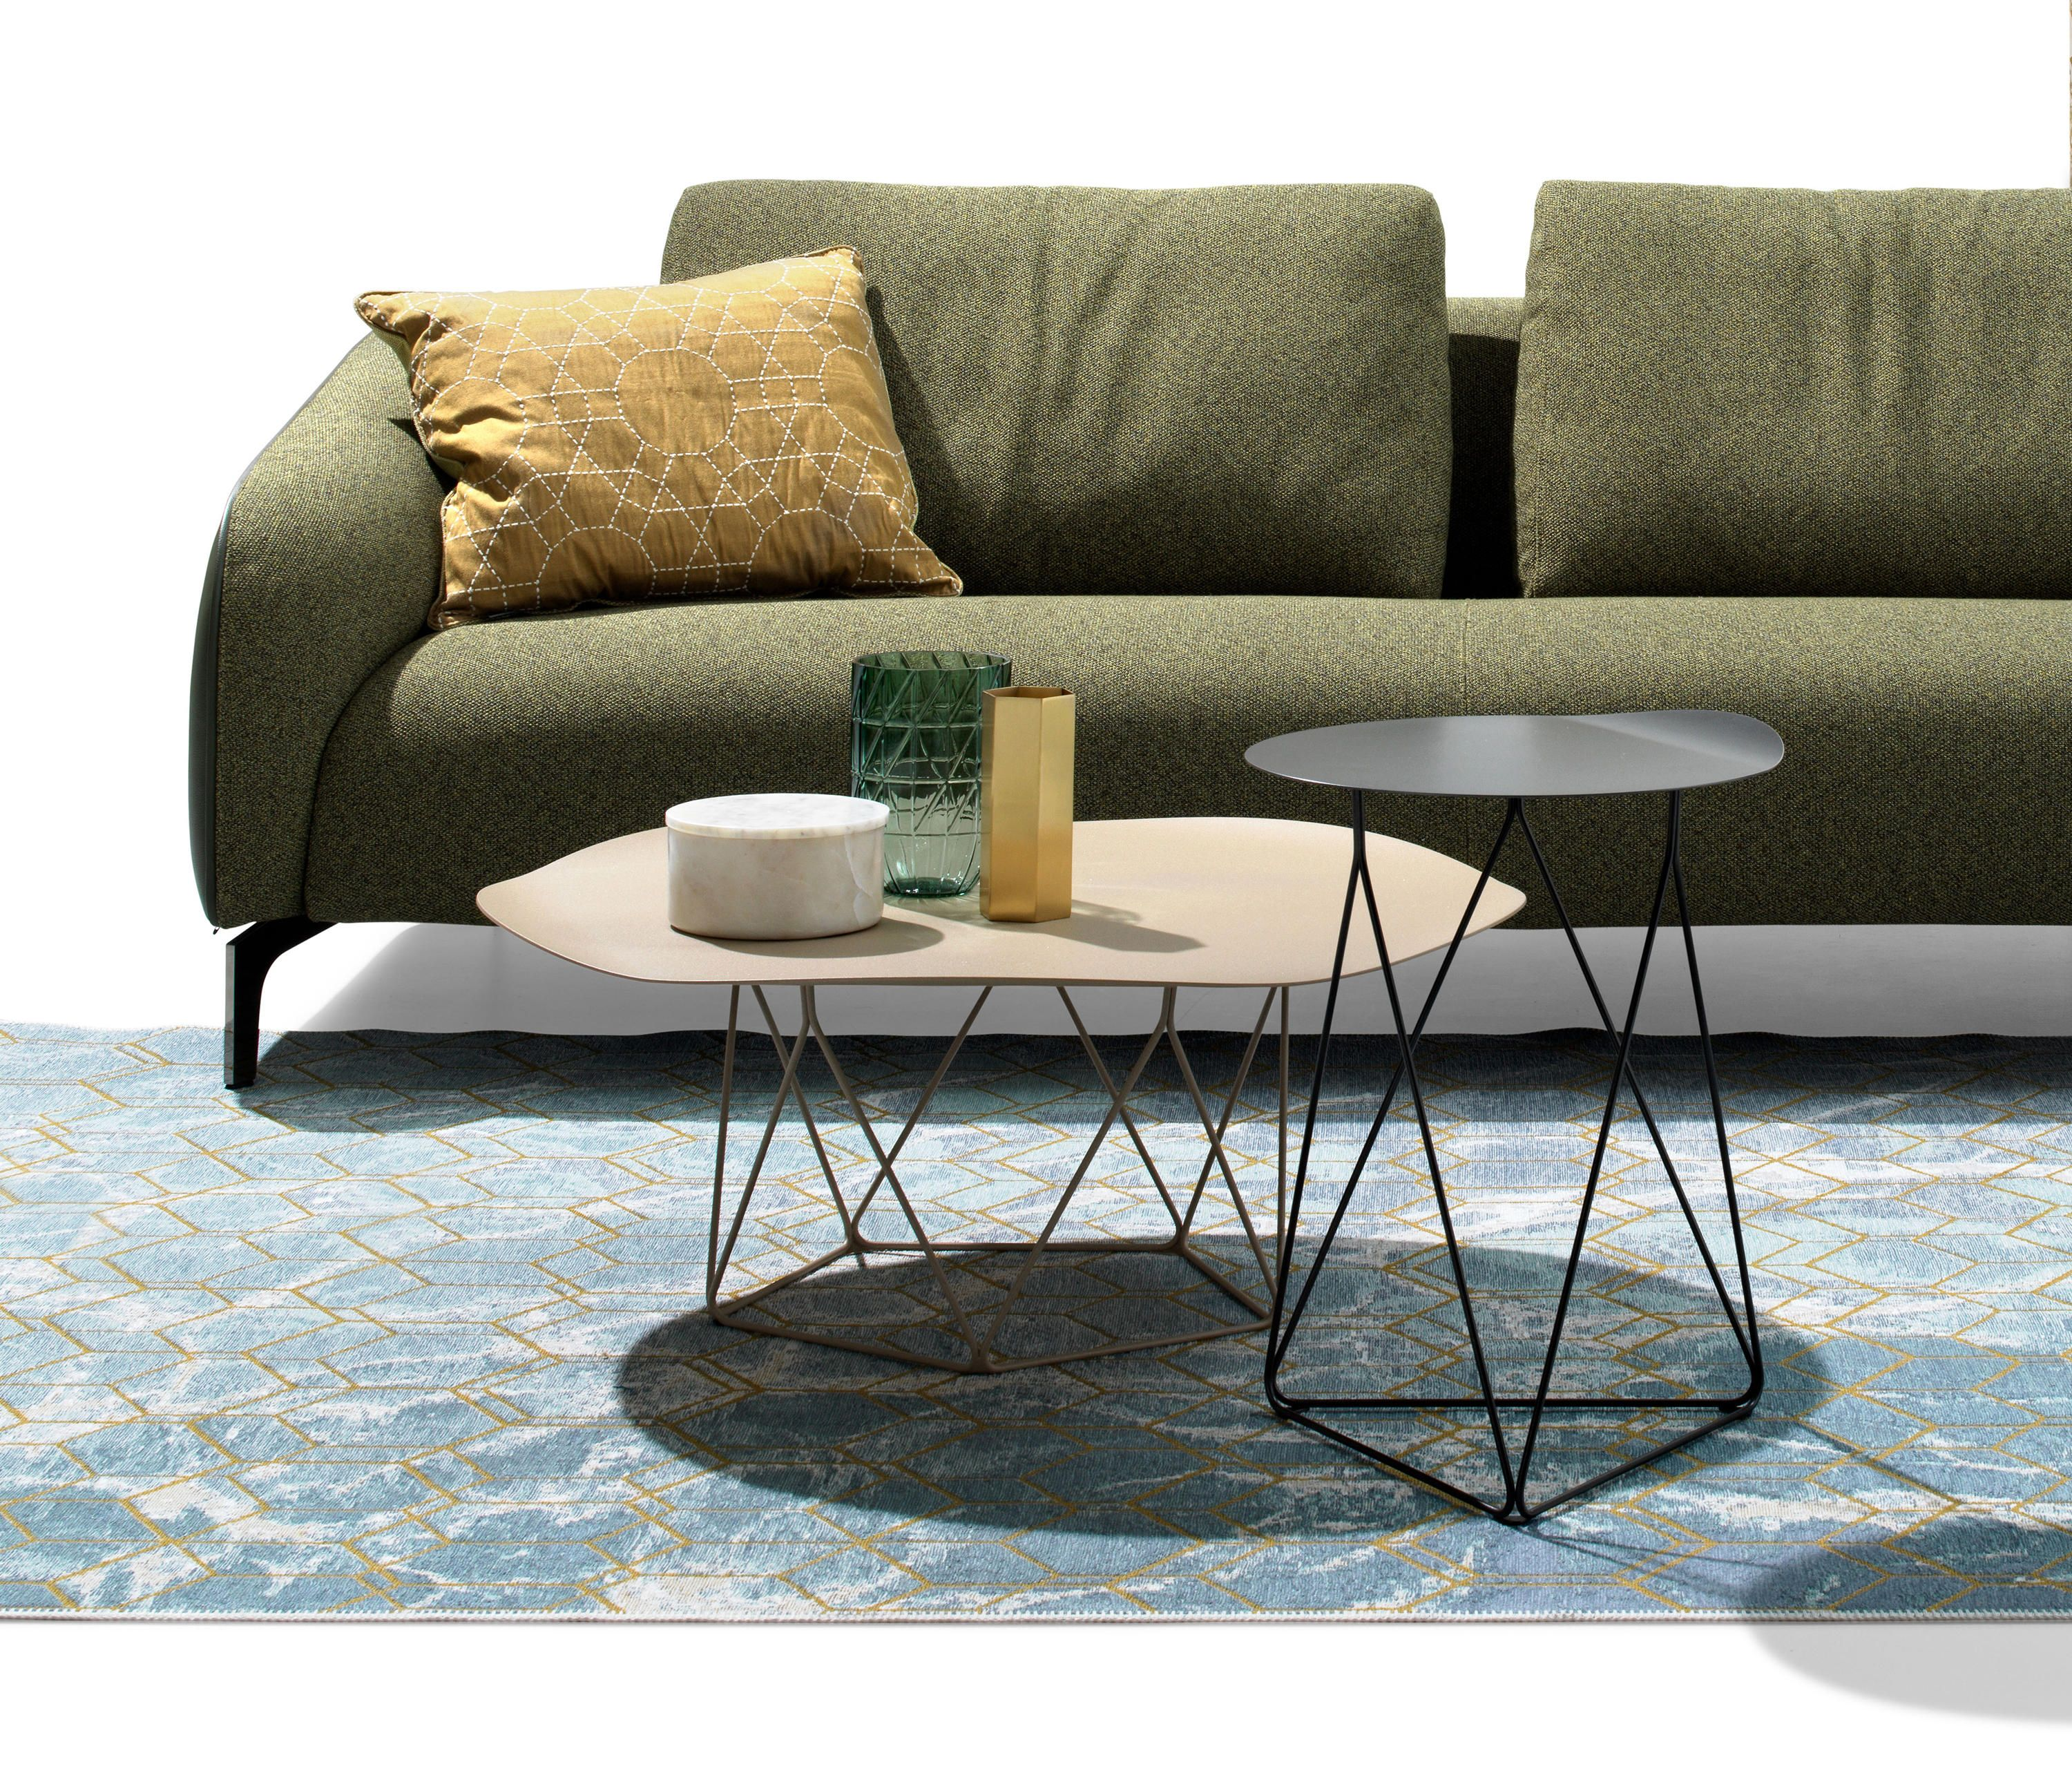 Coda Coffee Table By Pascal Bosetti For Leolux Architonic